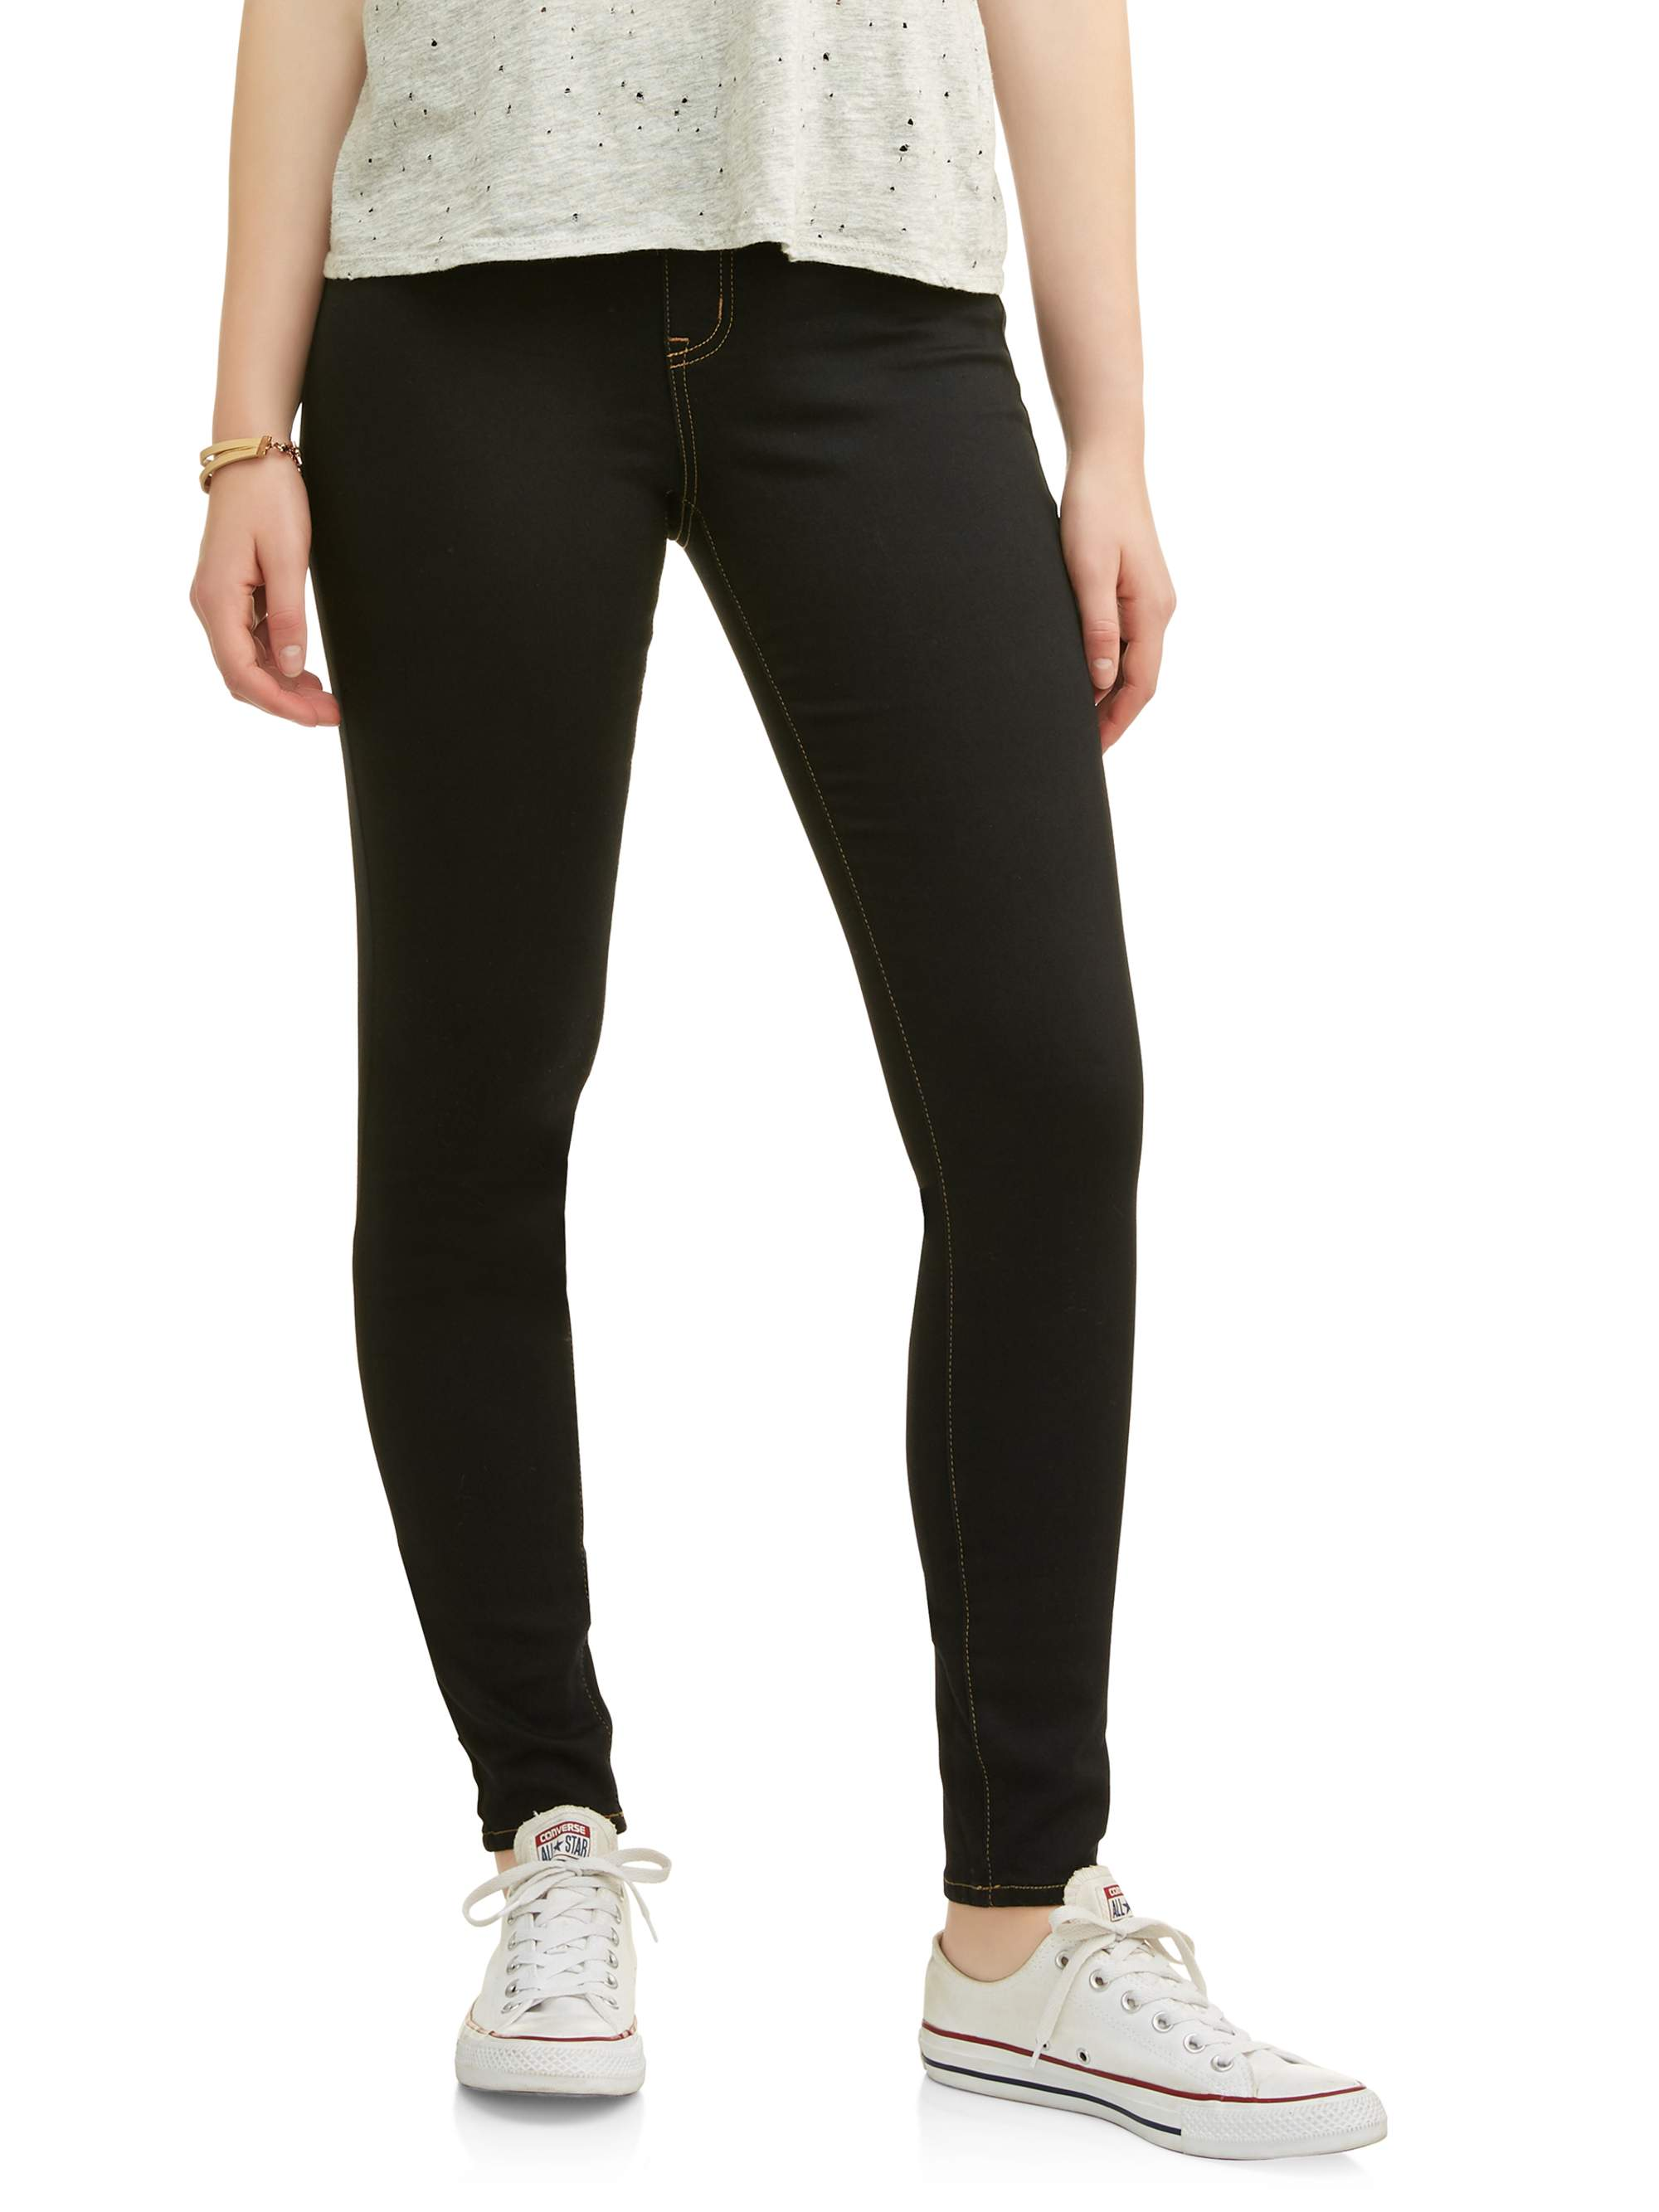 Juniors' Stacey Wide Elastic Waist Band Jegging